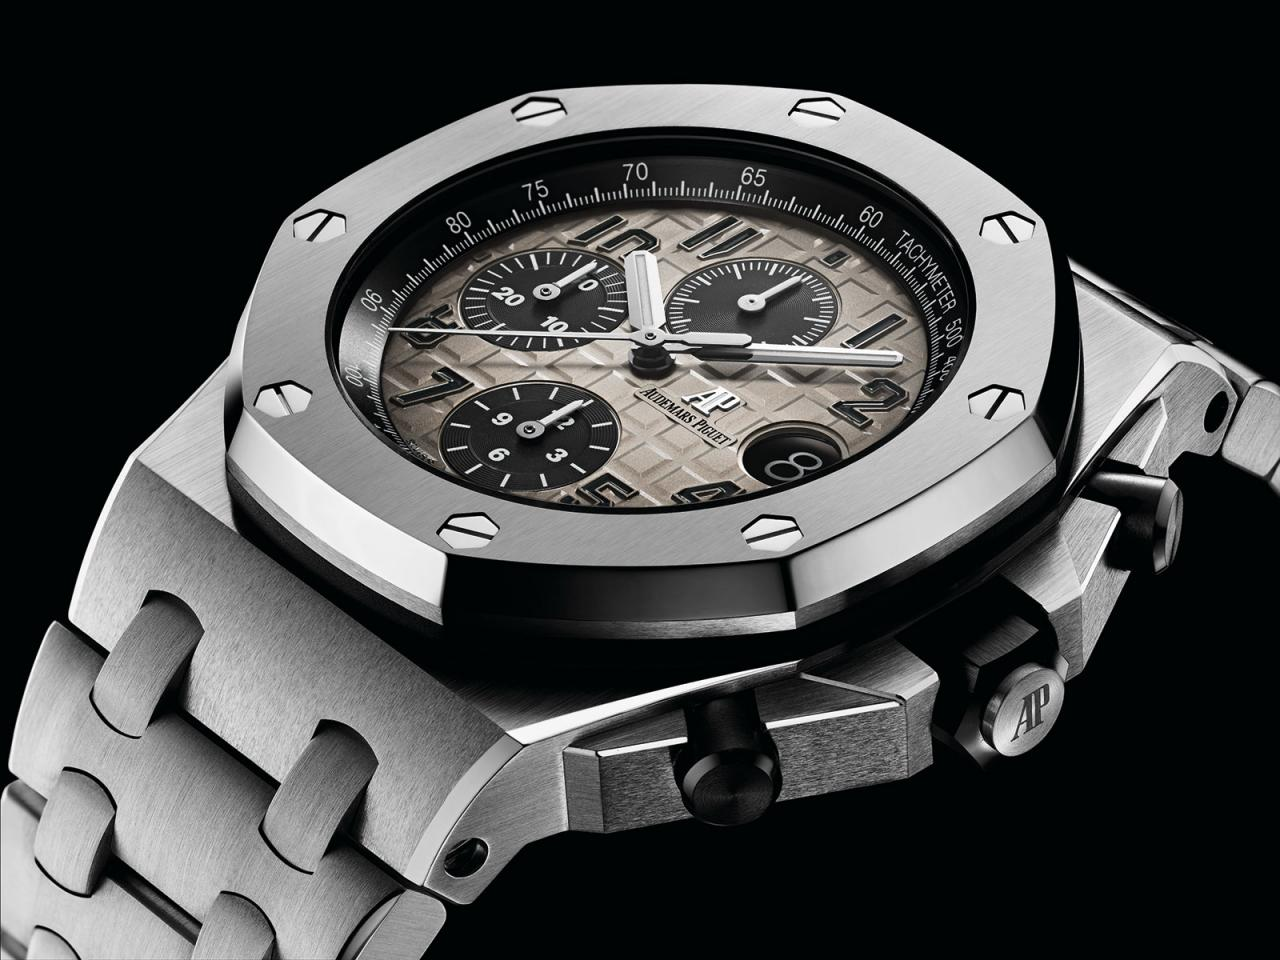 Audemars Piguet Royal Oak Offshore platinum 26470PT 1